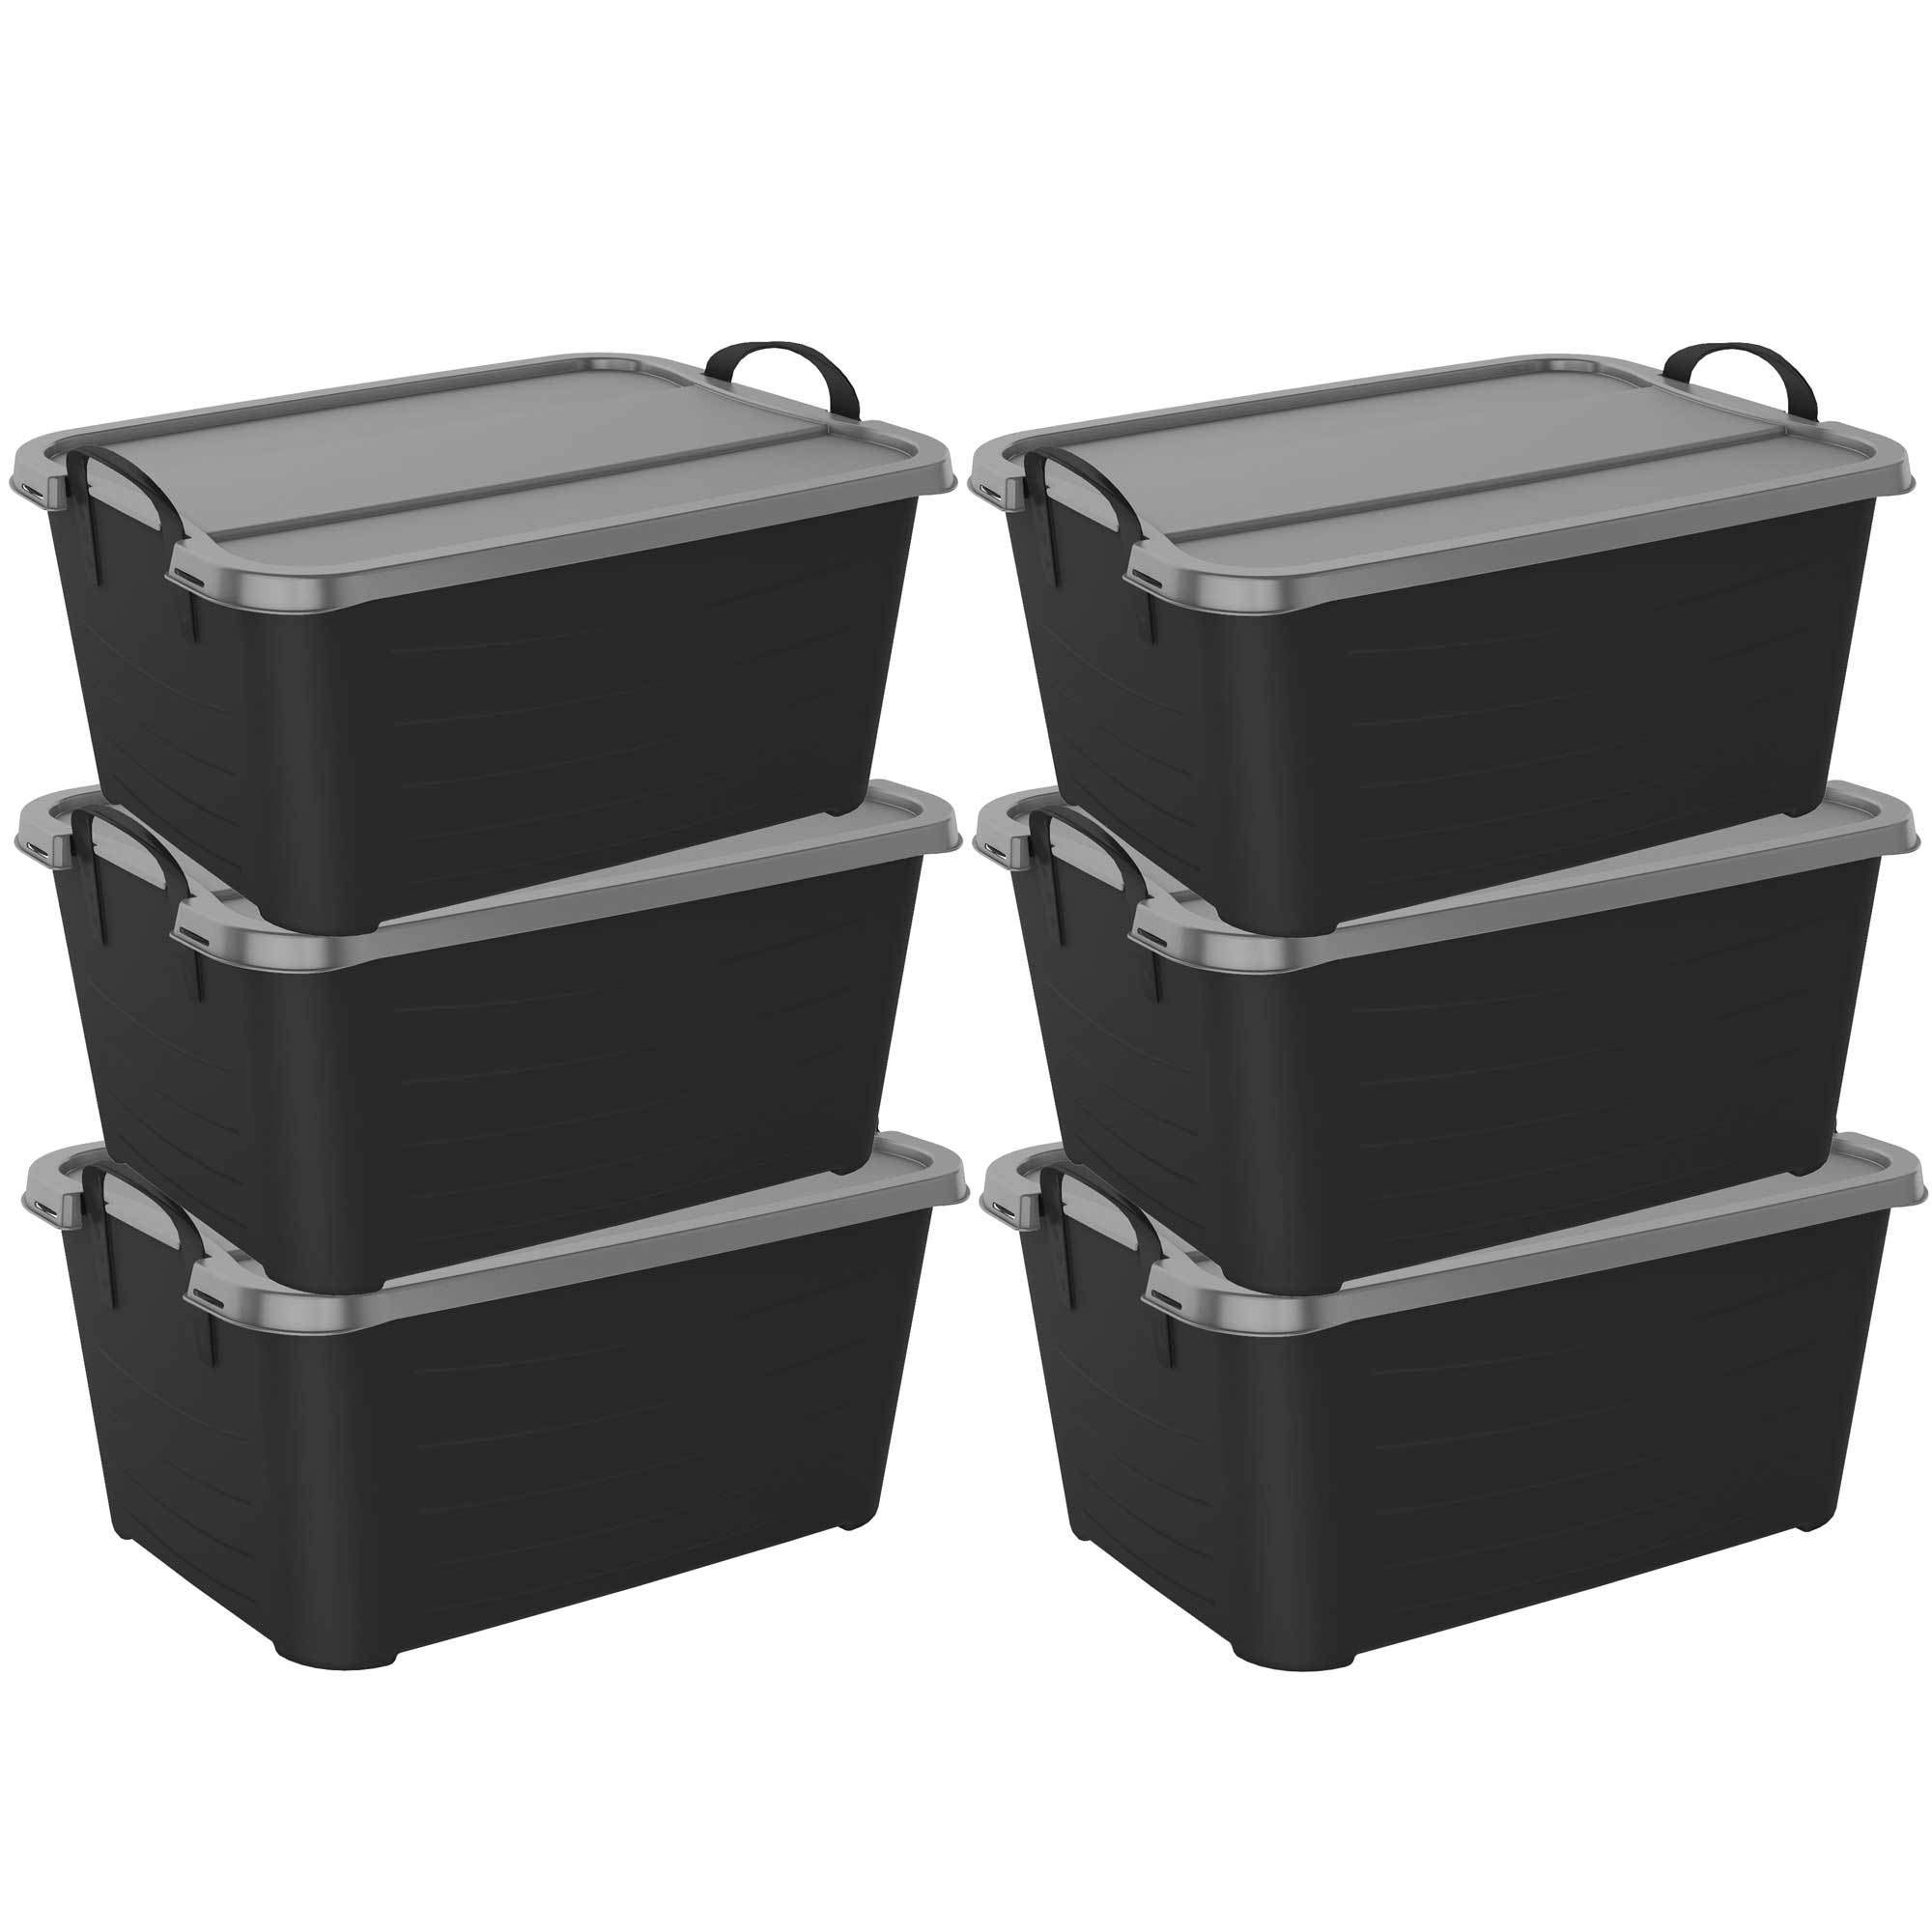 Life Story Black Stackable Closet & Storage Box 55 Quart Containers, (6 Pack) by Life Story